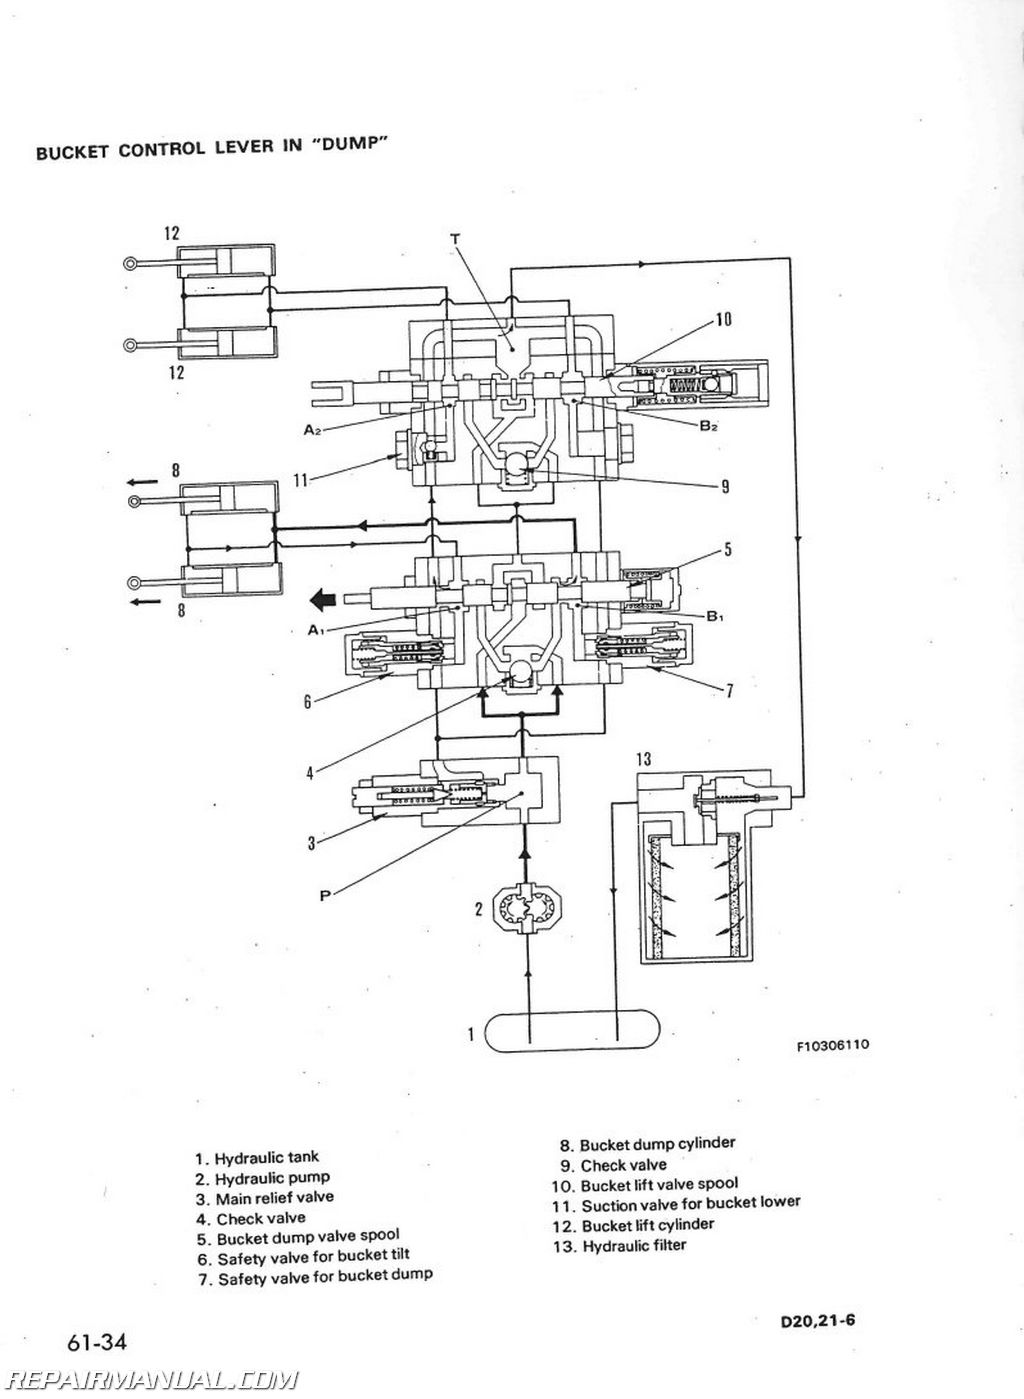 Komatsu Wiring Schematics Diagram For You Forklift Schematic Bx50 Library D20 Trusted